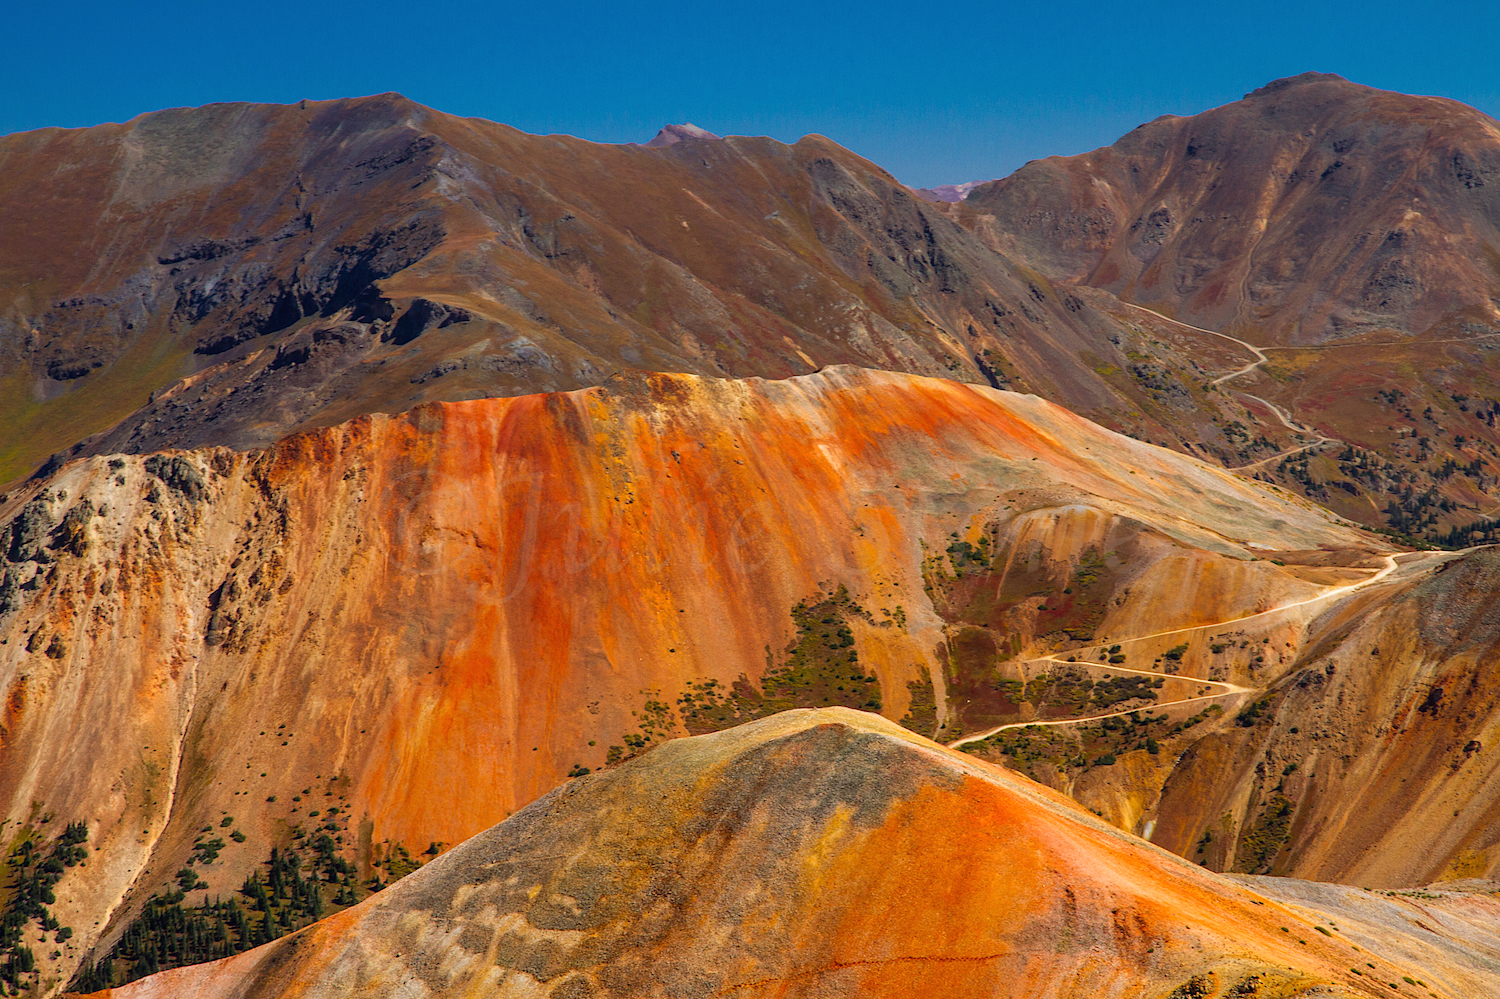 Red Mountain #3, Image #1176